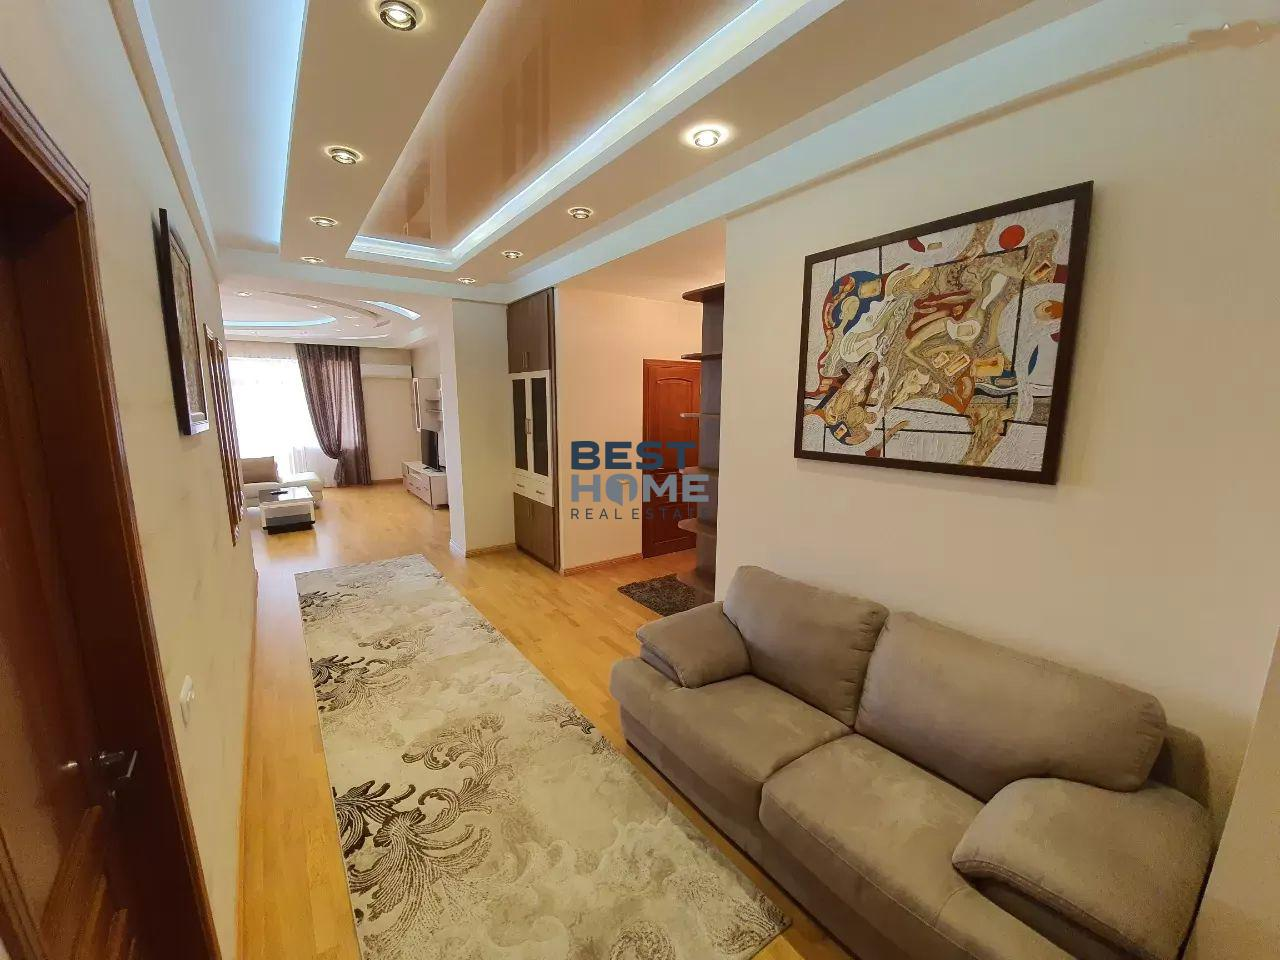 Nice two bedroom apartment for rent in a small center